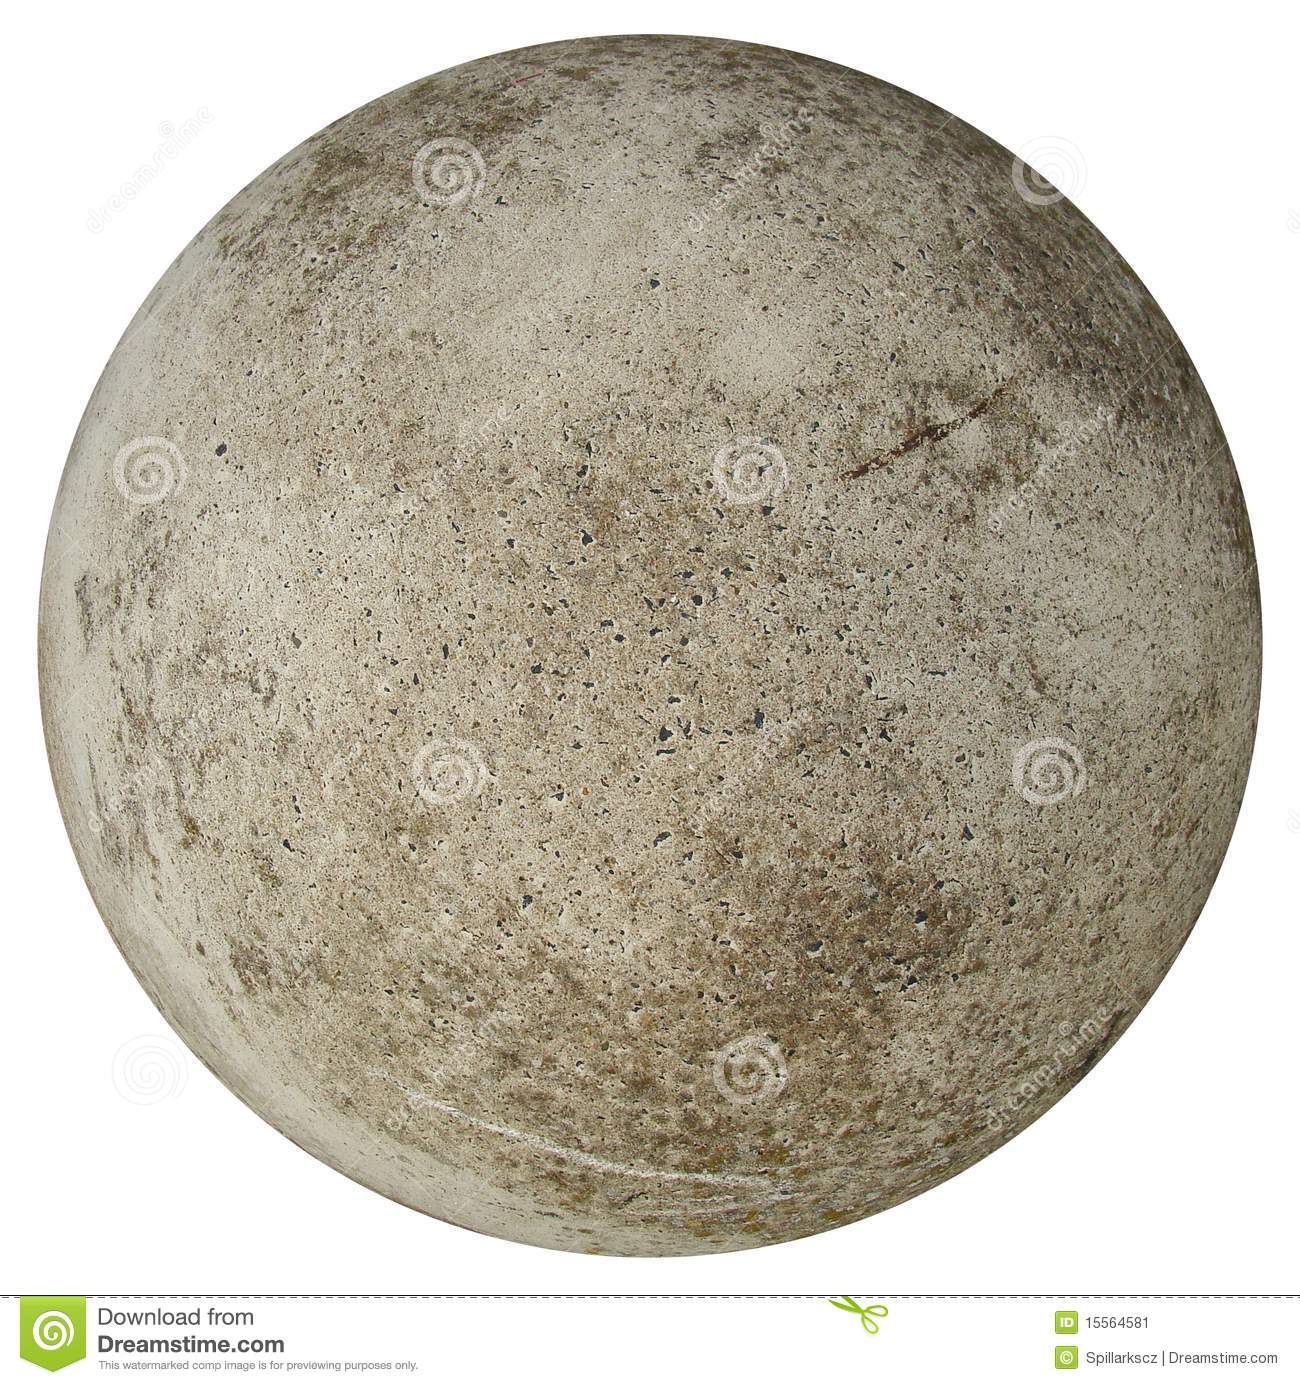 Round Stone Ball And Sphere Photos, Images, & Pictures.